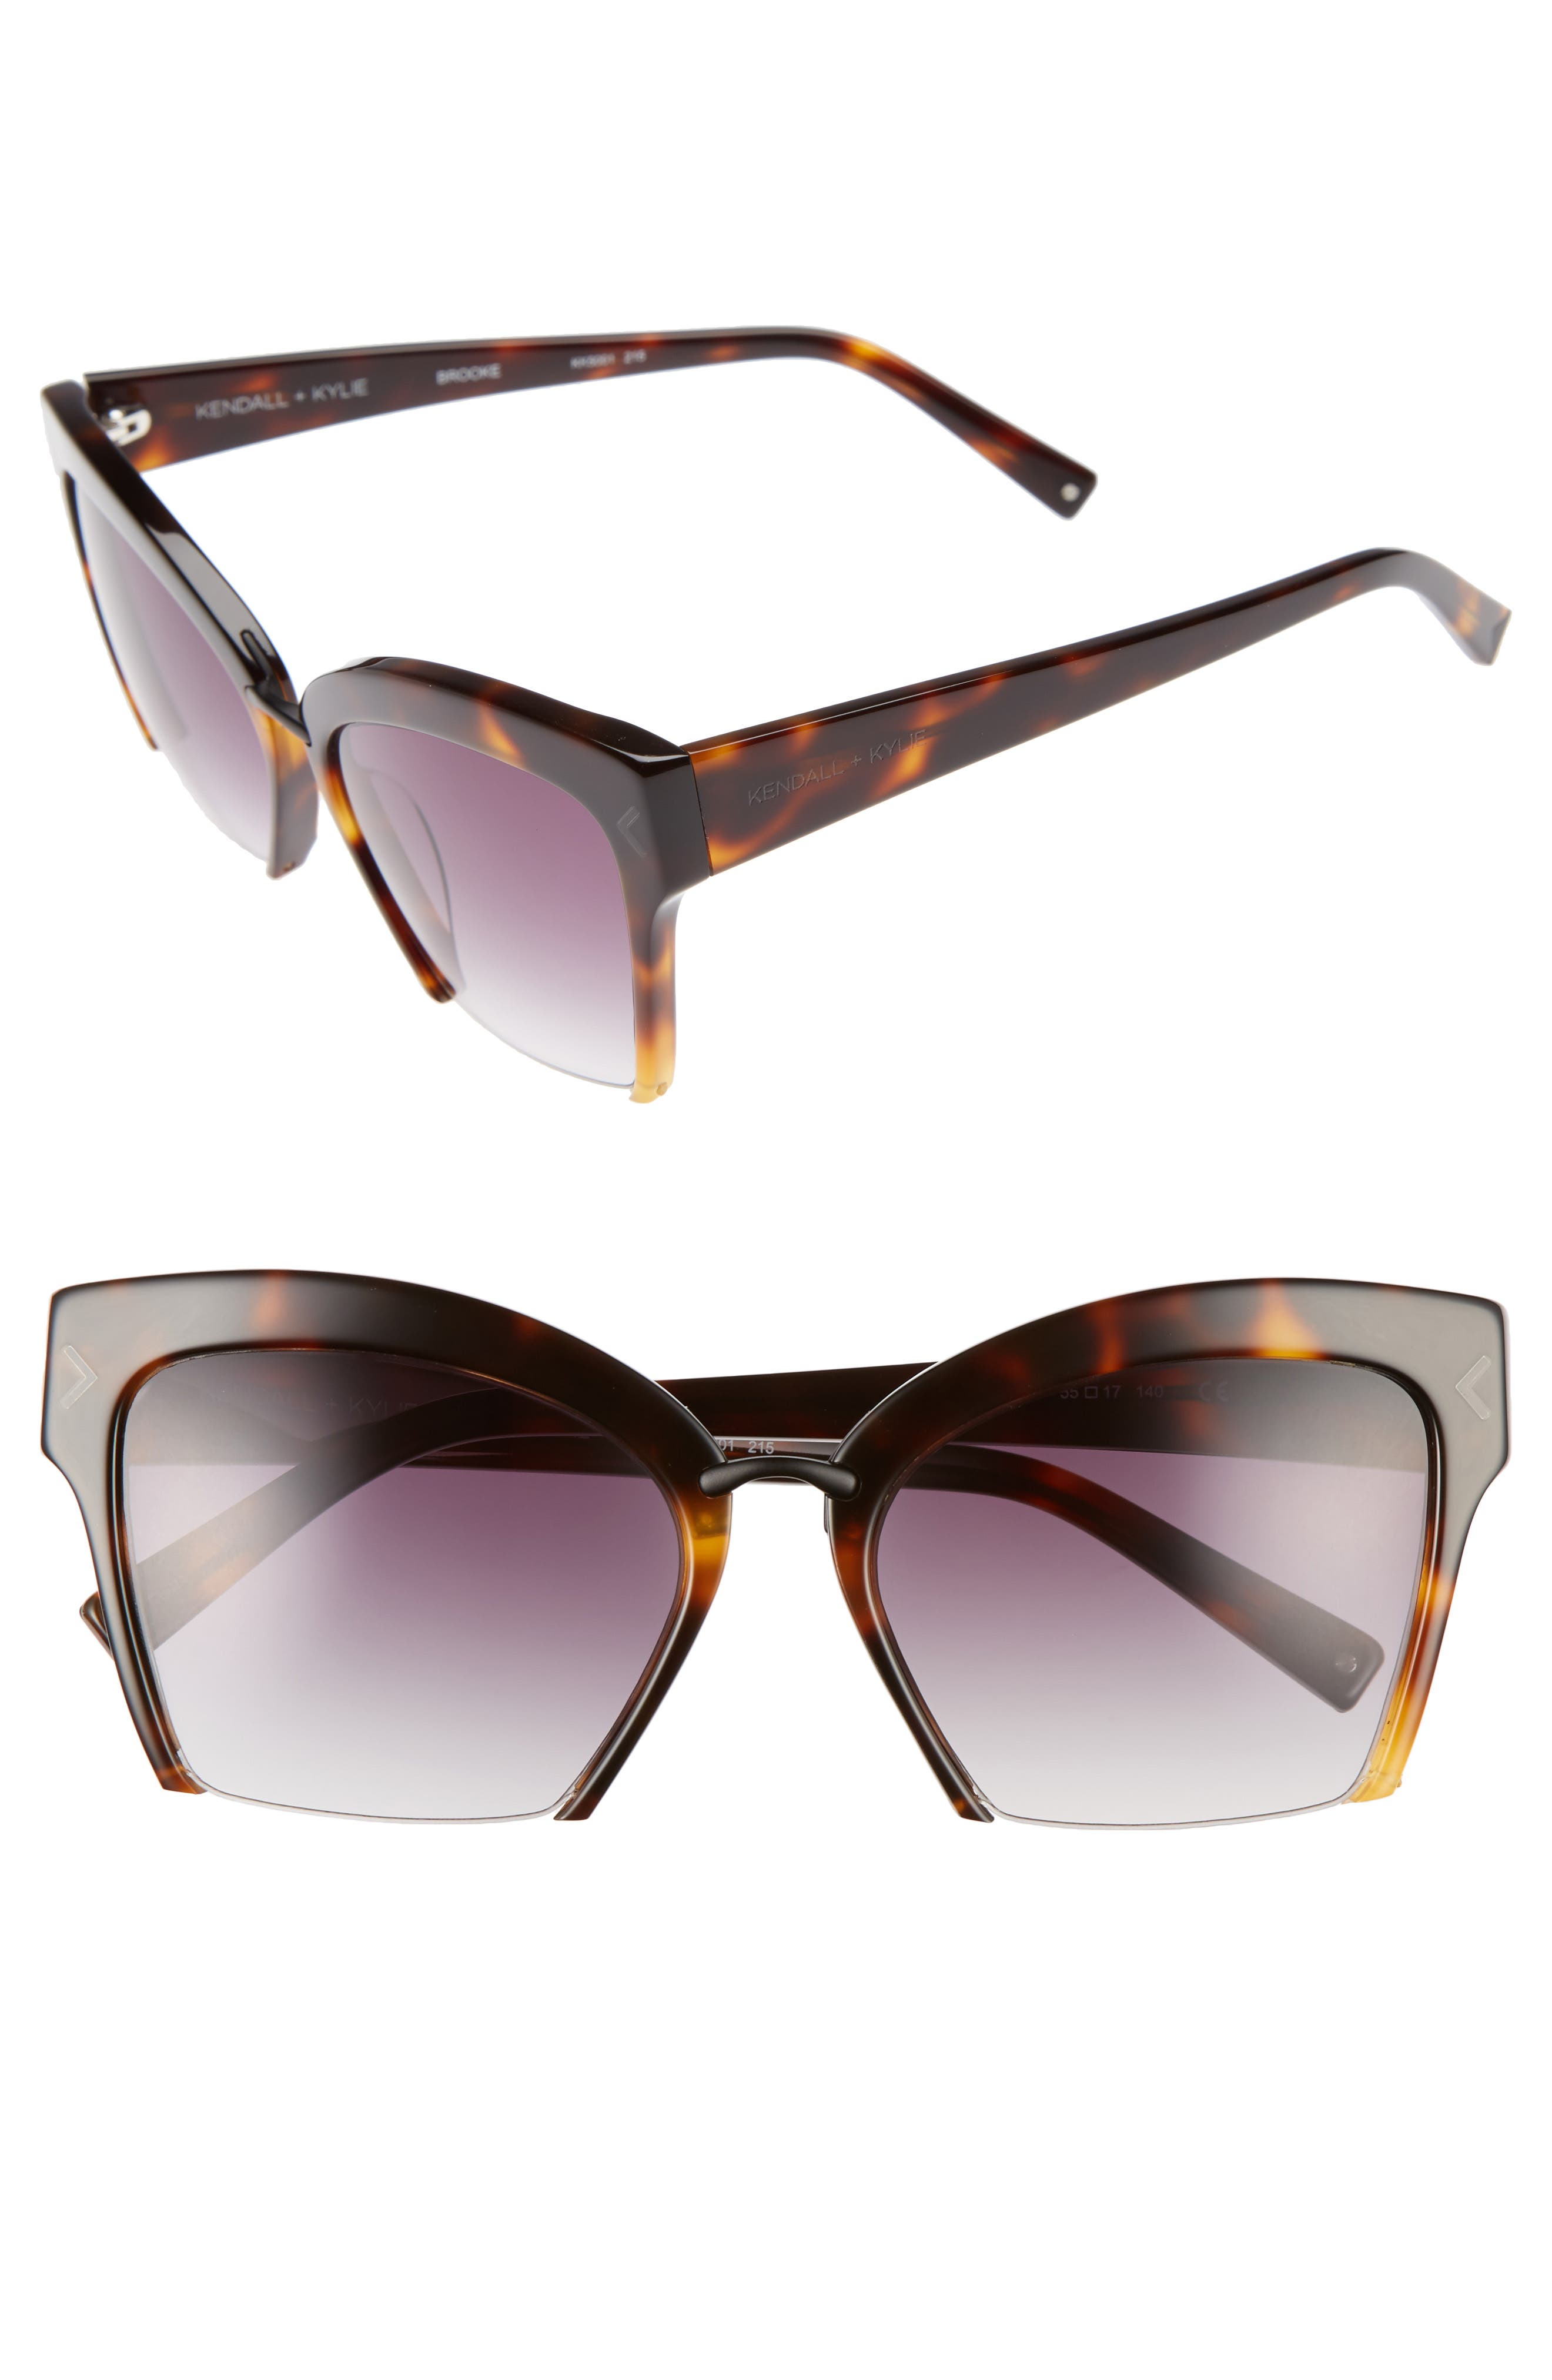 KENDALL + KYLIE Brooke 55mm Semi Rimless Butterfly Sunglasses